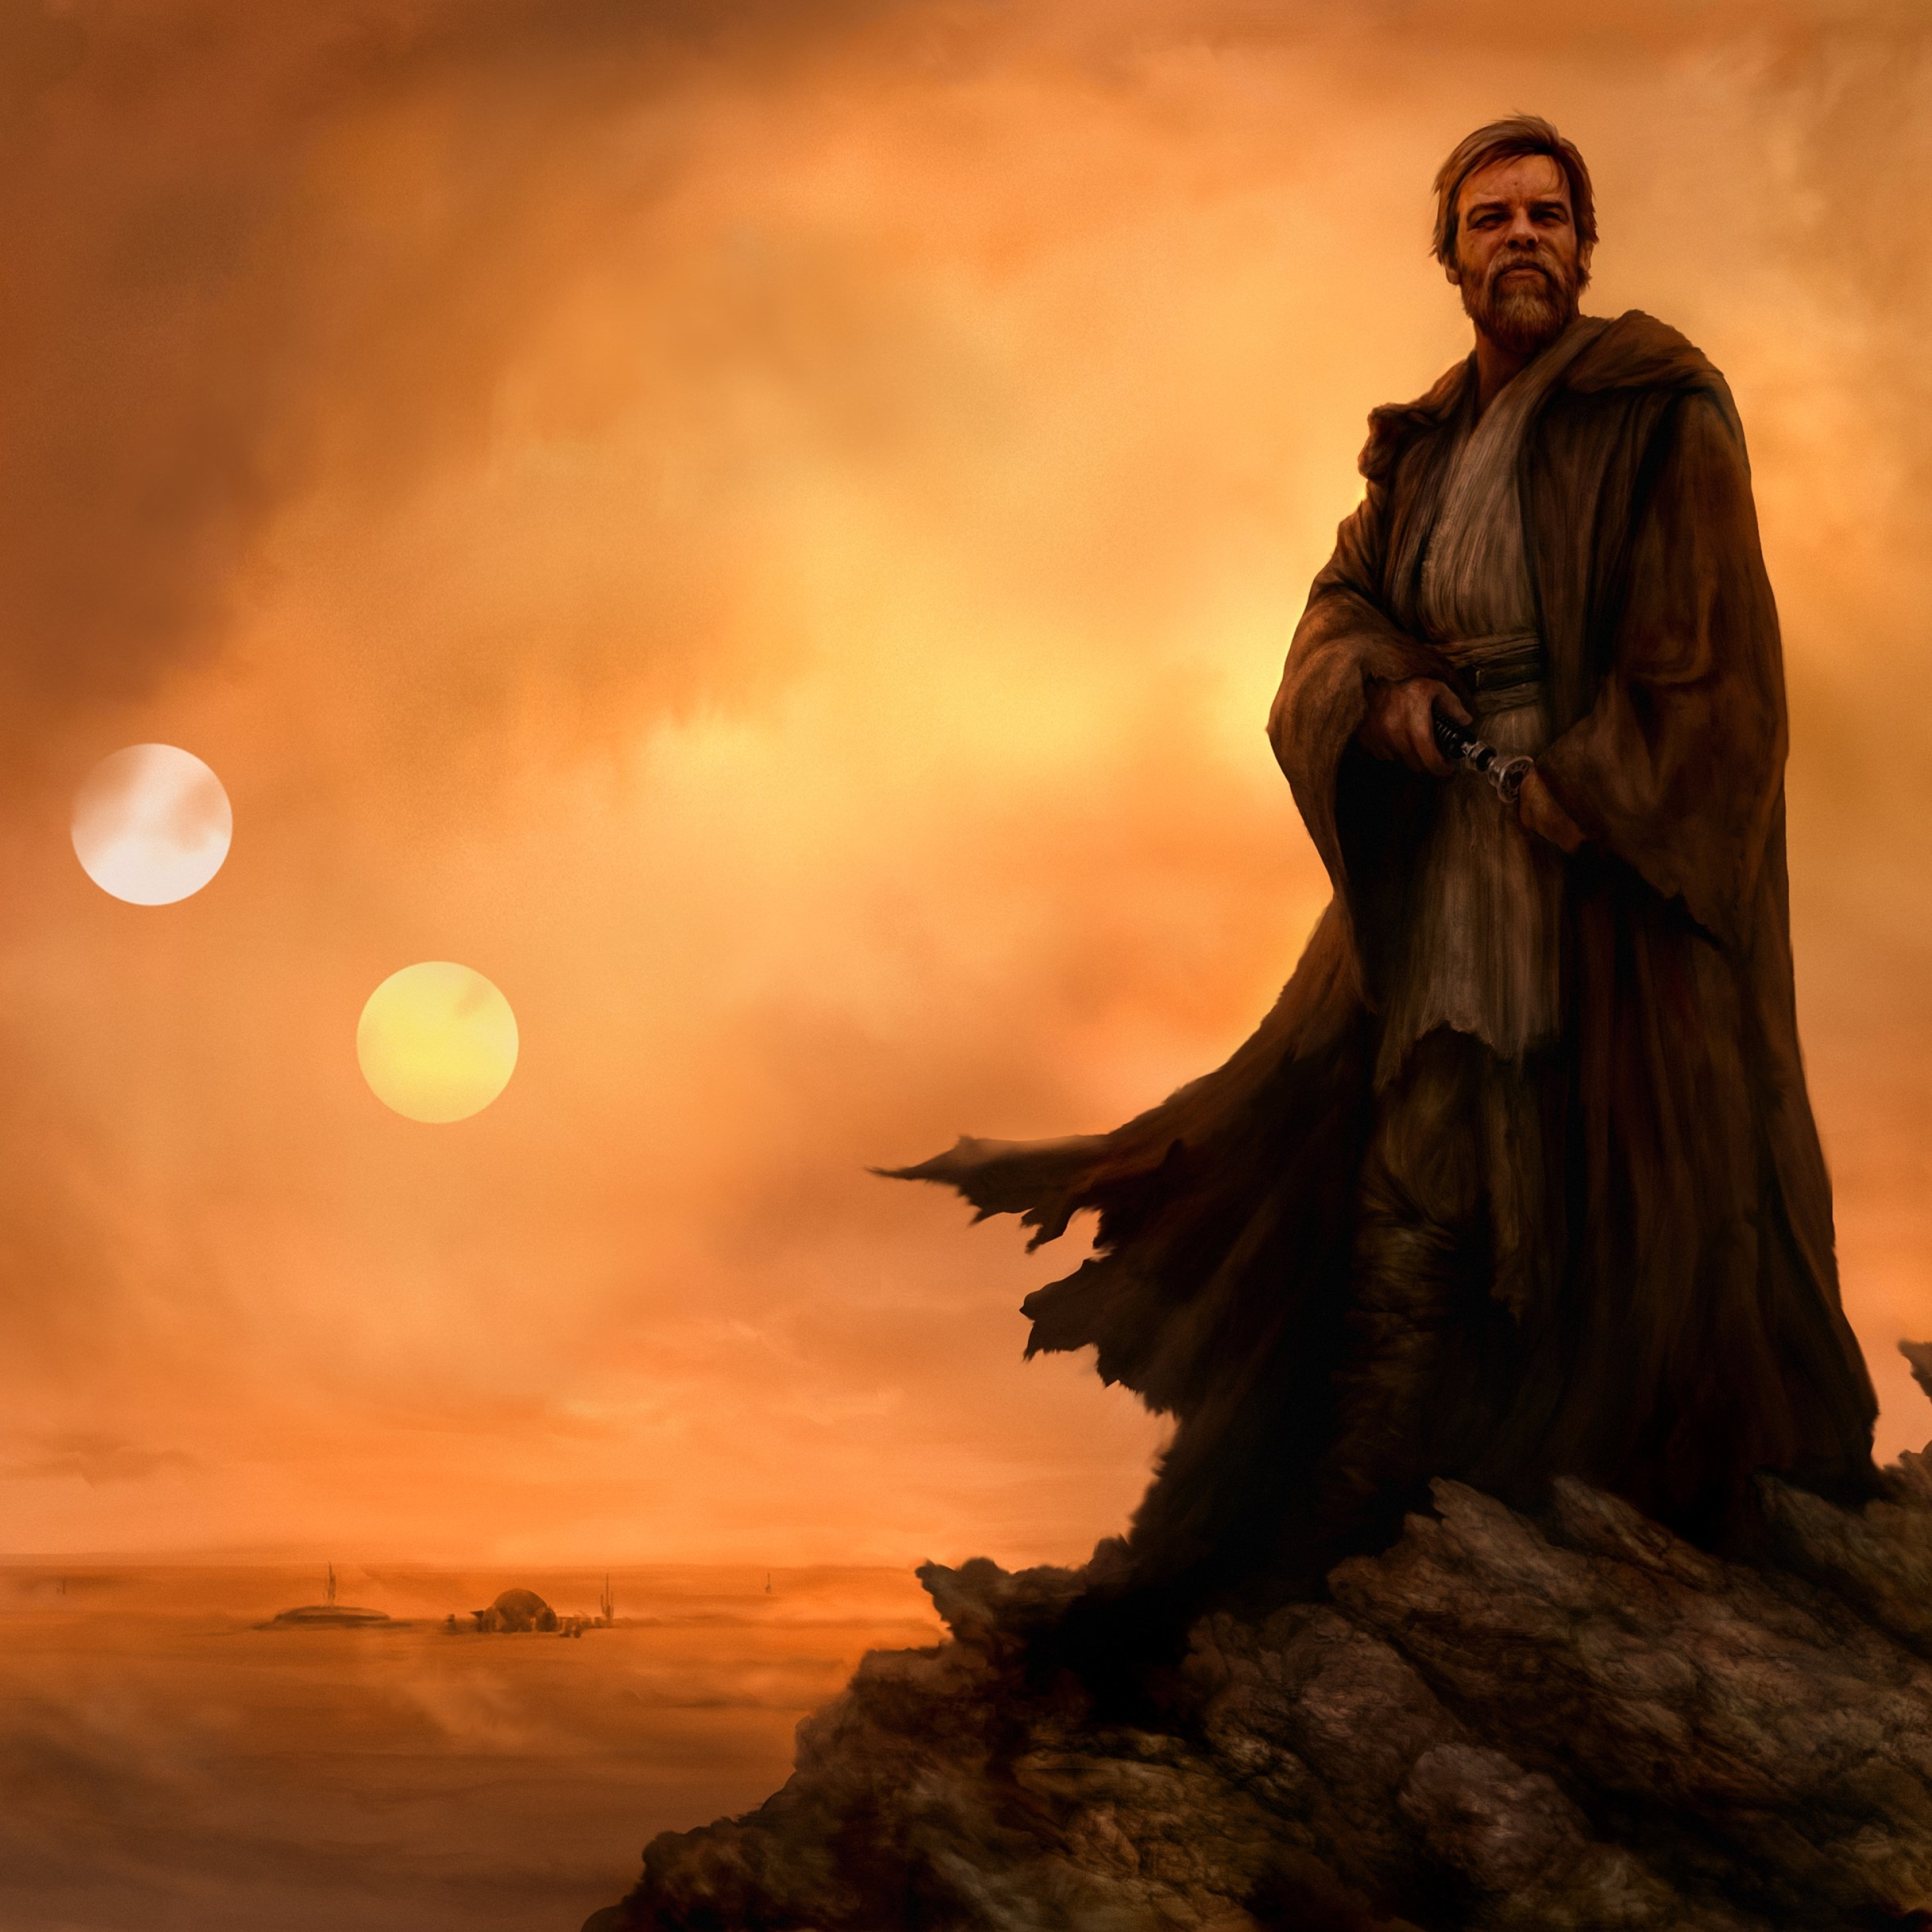 star wars obi wan artwork am1qa2aUmZqaraWkpJRnbmhnrWduaGc